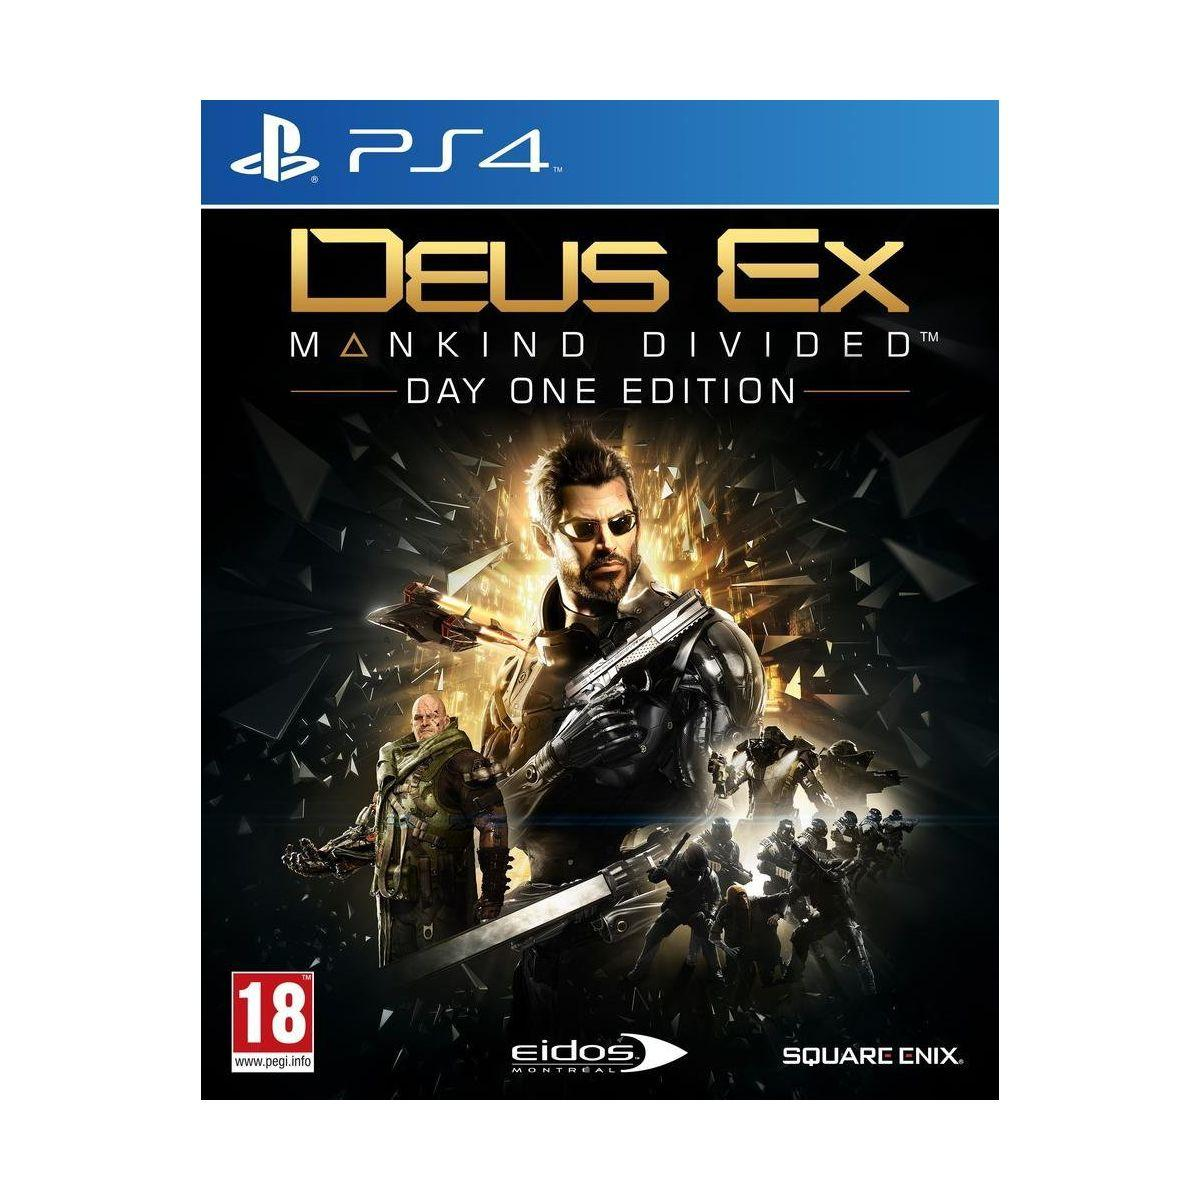 Jeu ps4 koch media deus ex mankind divided - day one edition - 2% de remise immédiate avec le code : cool2 (photo)